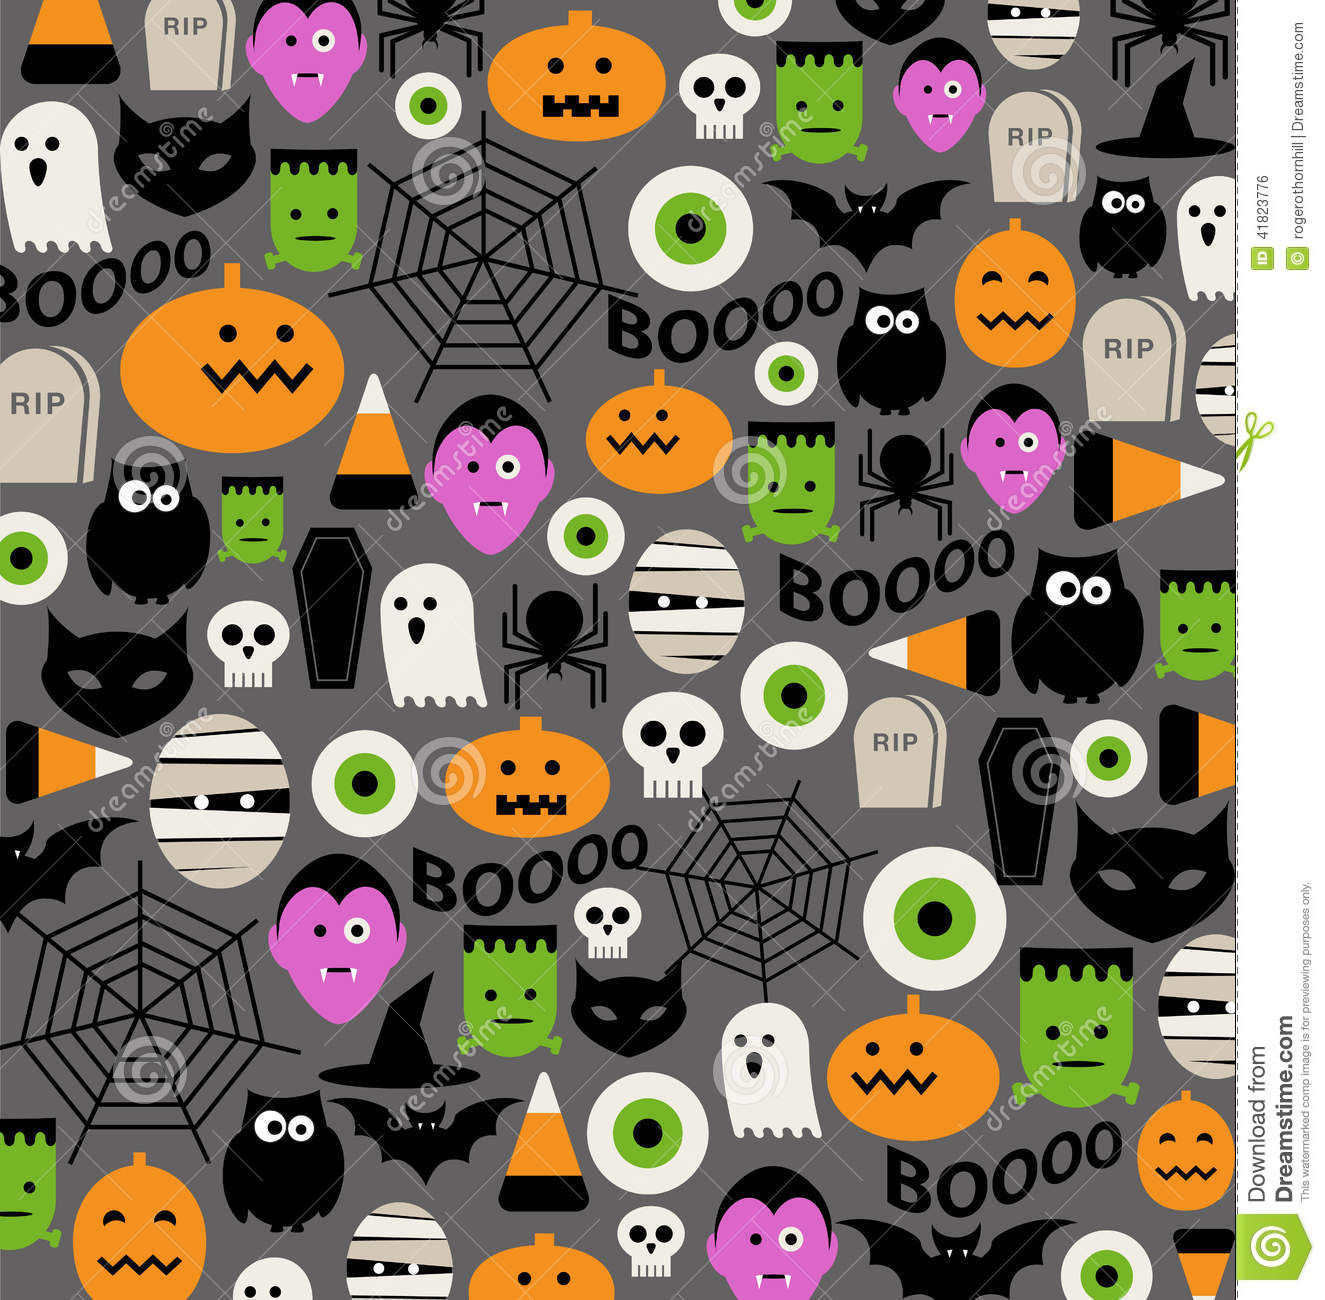 Free Download Cute Halloween Pattern Background 01 1325x1300 For Your Desktop Mobile Tablet Explore 71 Cute Halloween Background Cute Halloween Desktop Wallpaper Cute Halloween Vampire Wallpaper